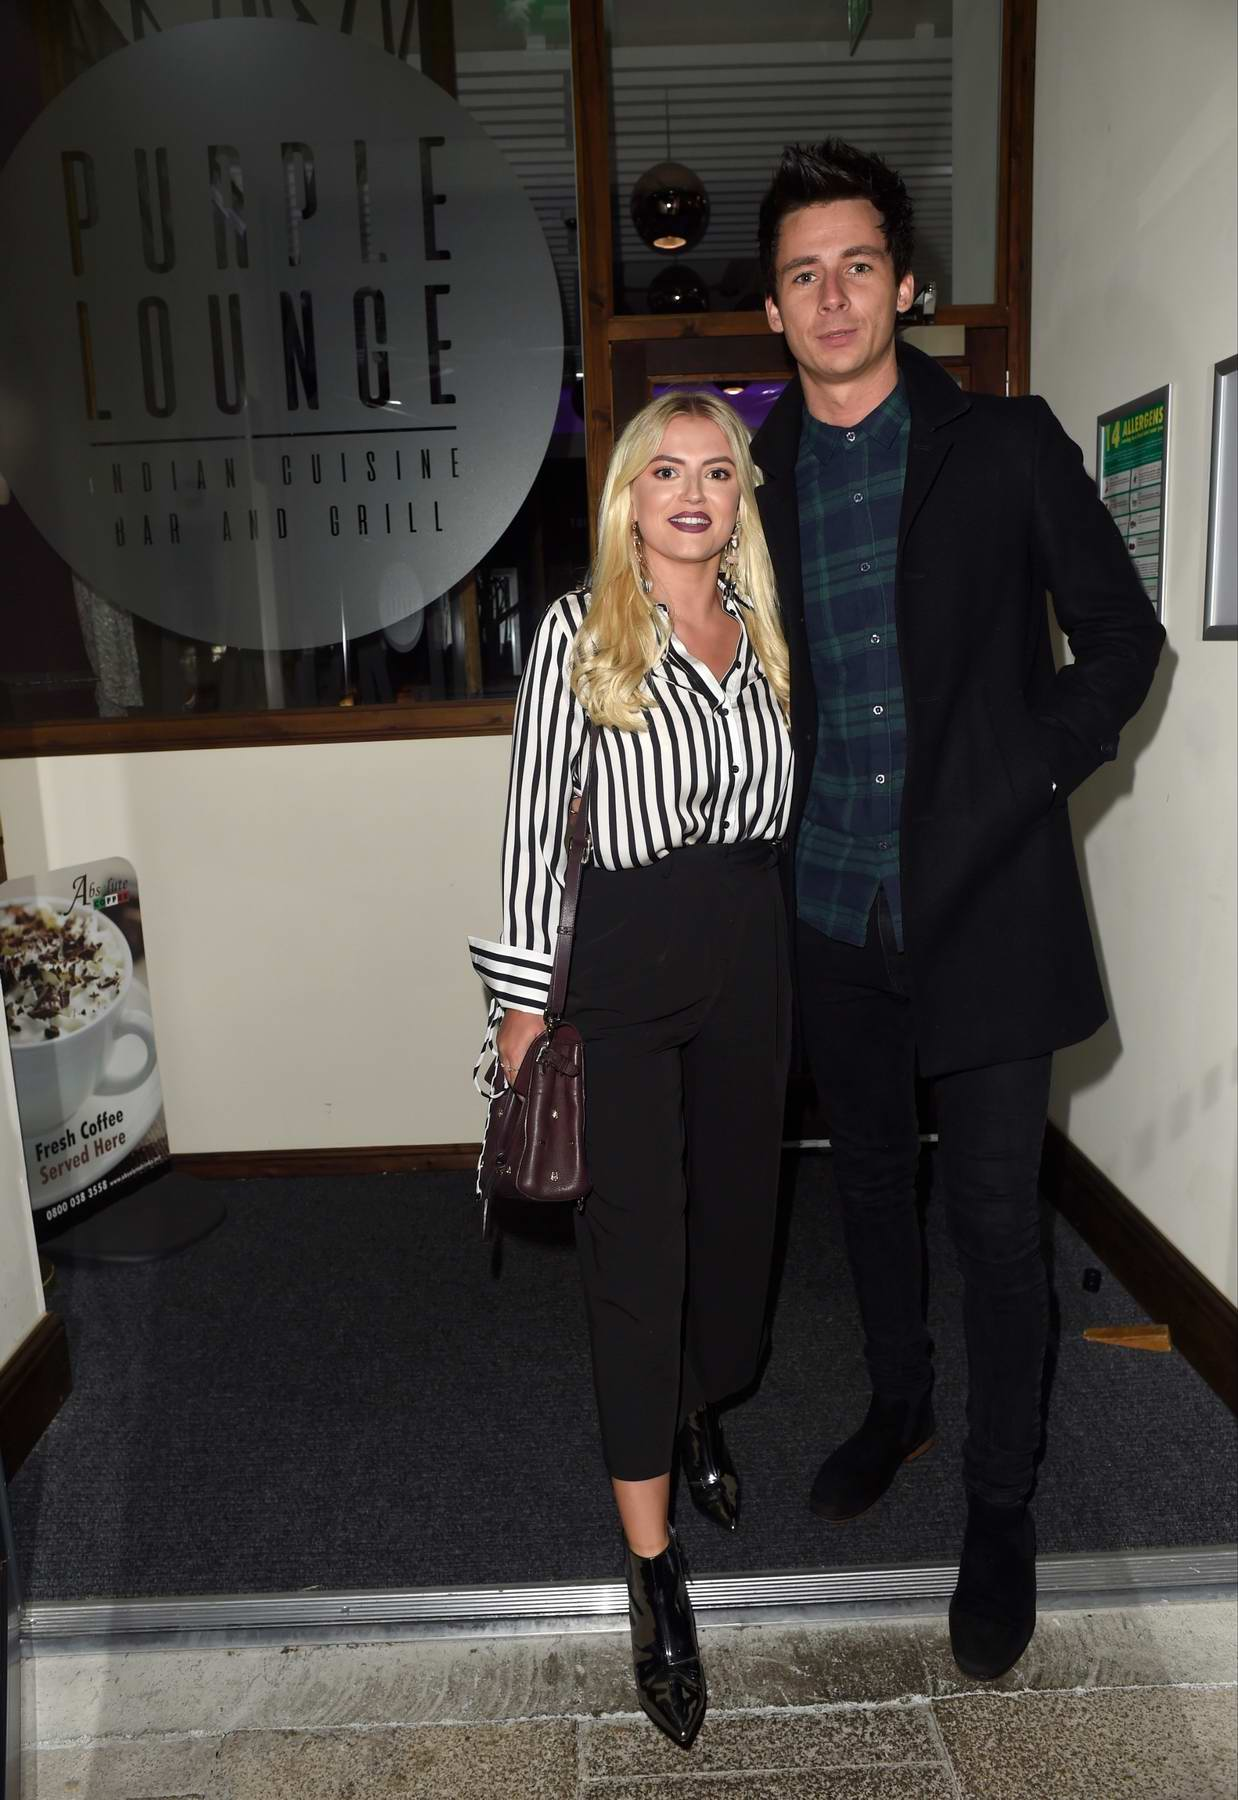 Lucy Fallon enjoy a date night with her boyfriend at the Purple Lounge Indian Restaurant in Walkden, Manchester, UK